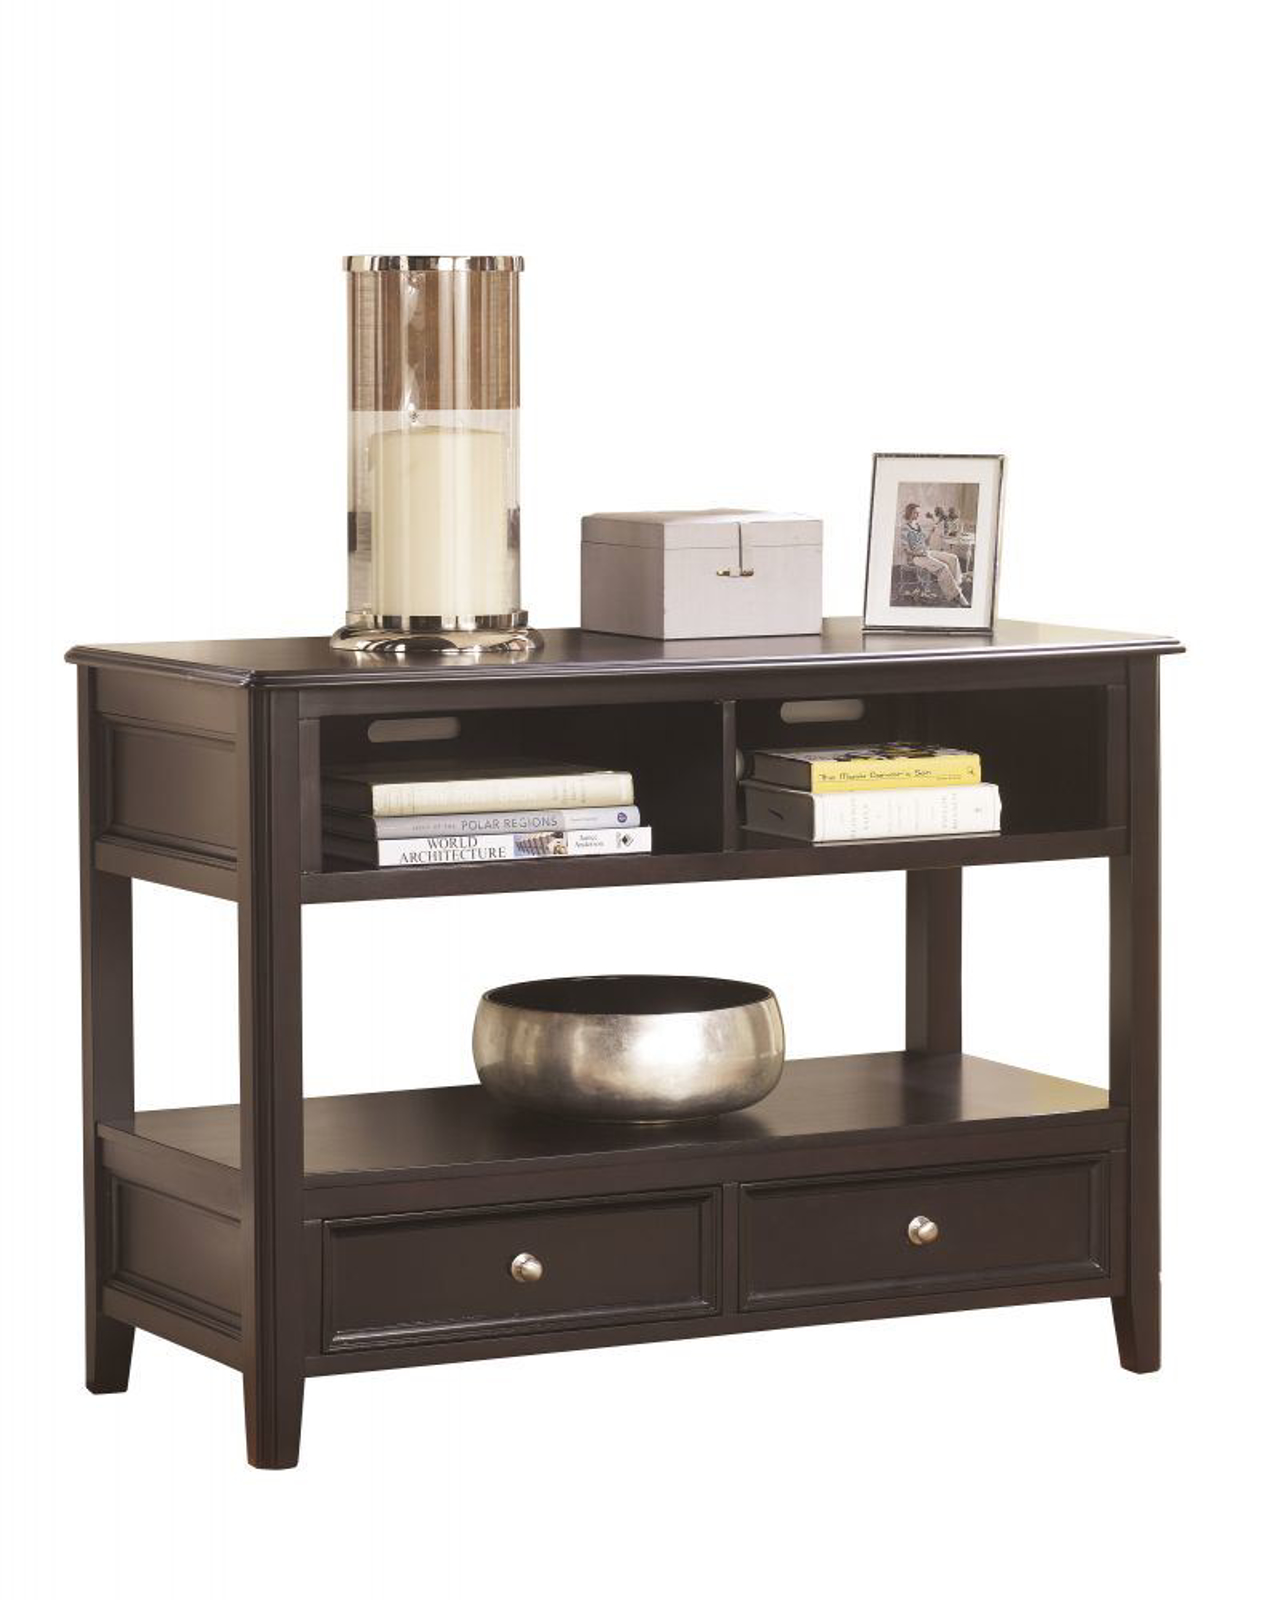 Outstanding Carlyle Console Sofa Table Ncnpc Chair Design For Home Ncnpcorg